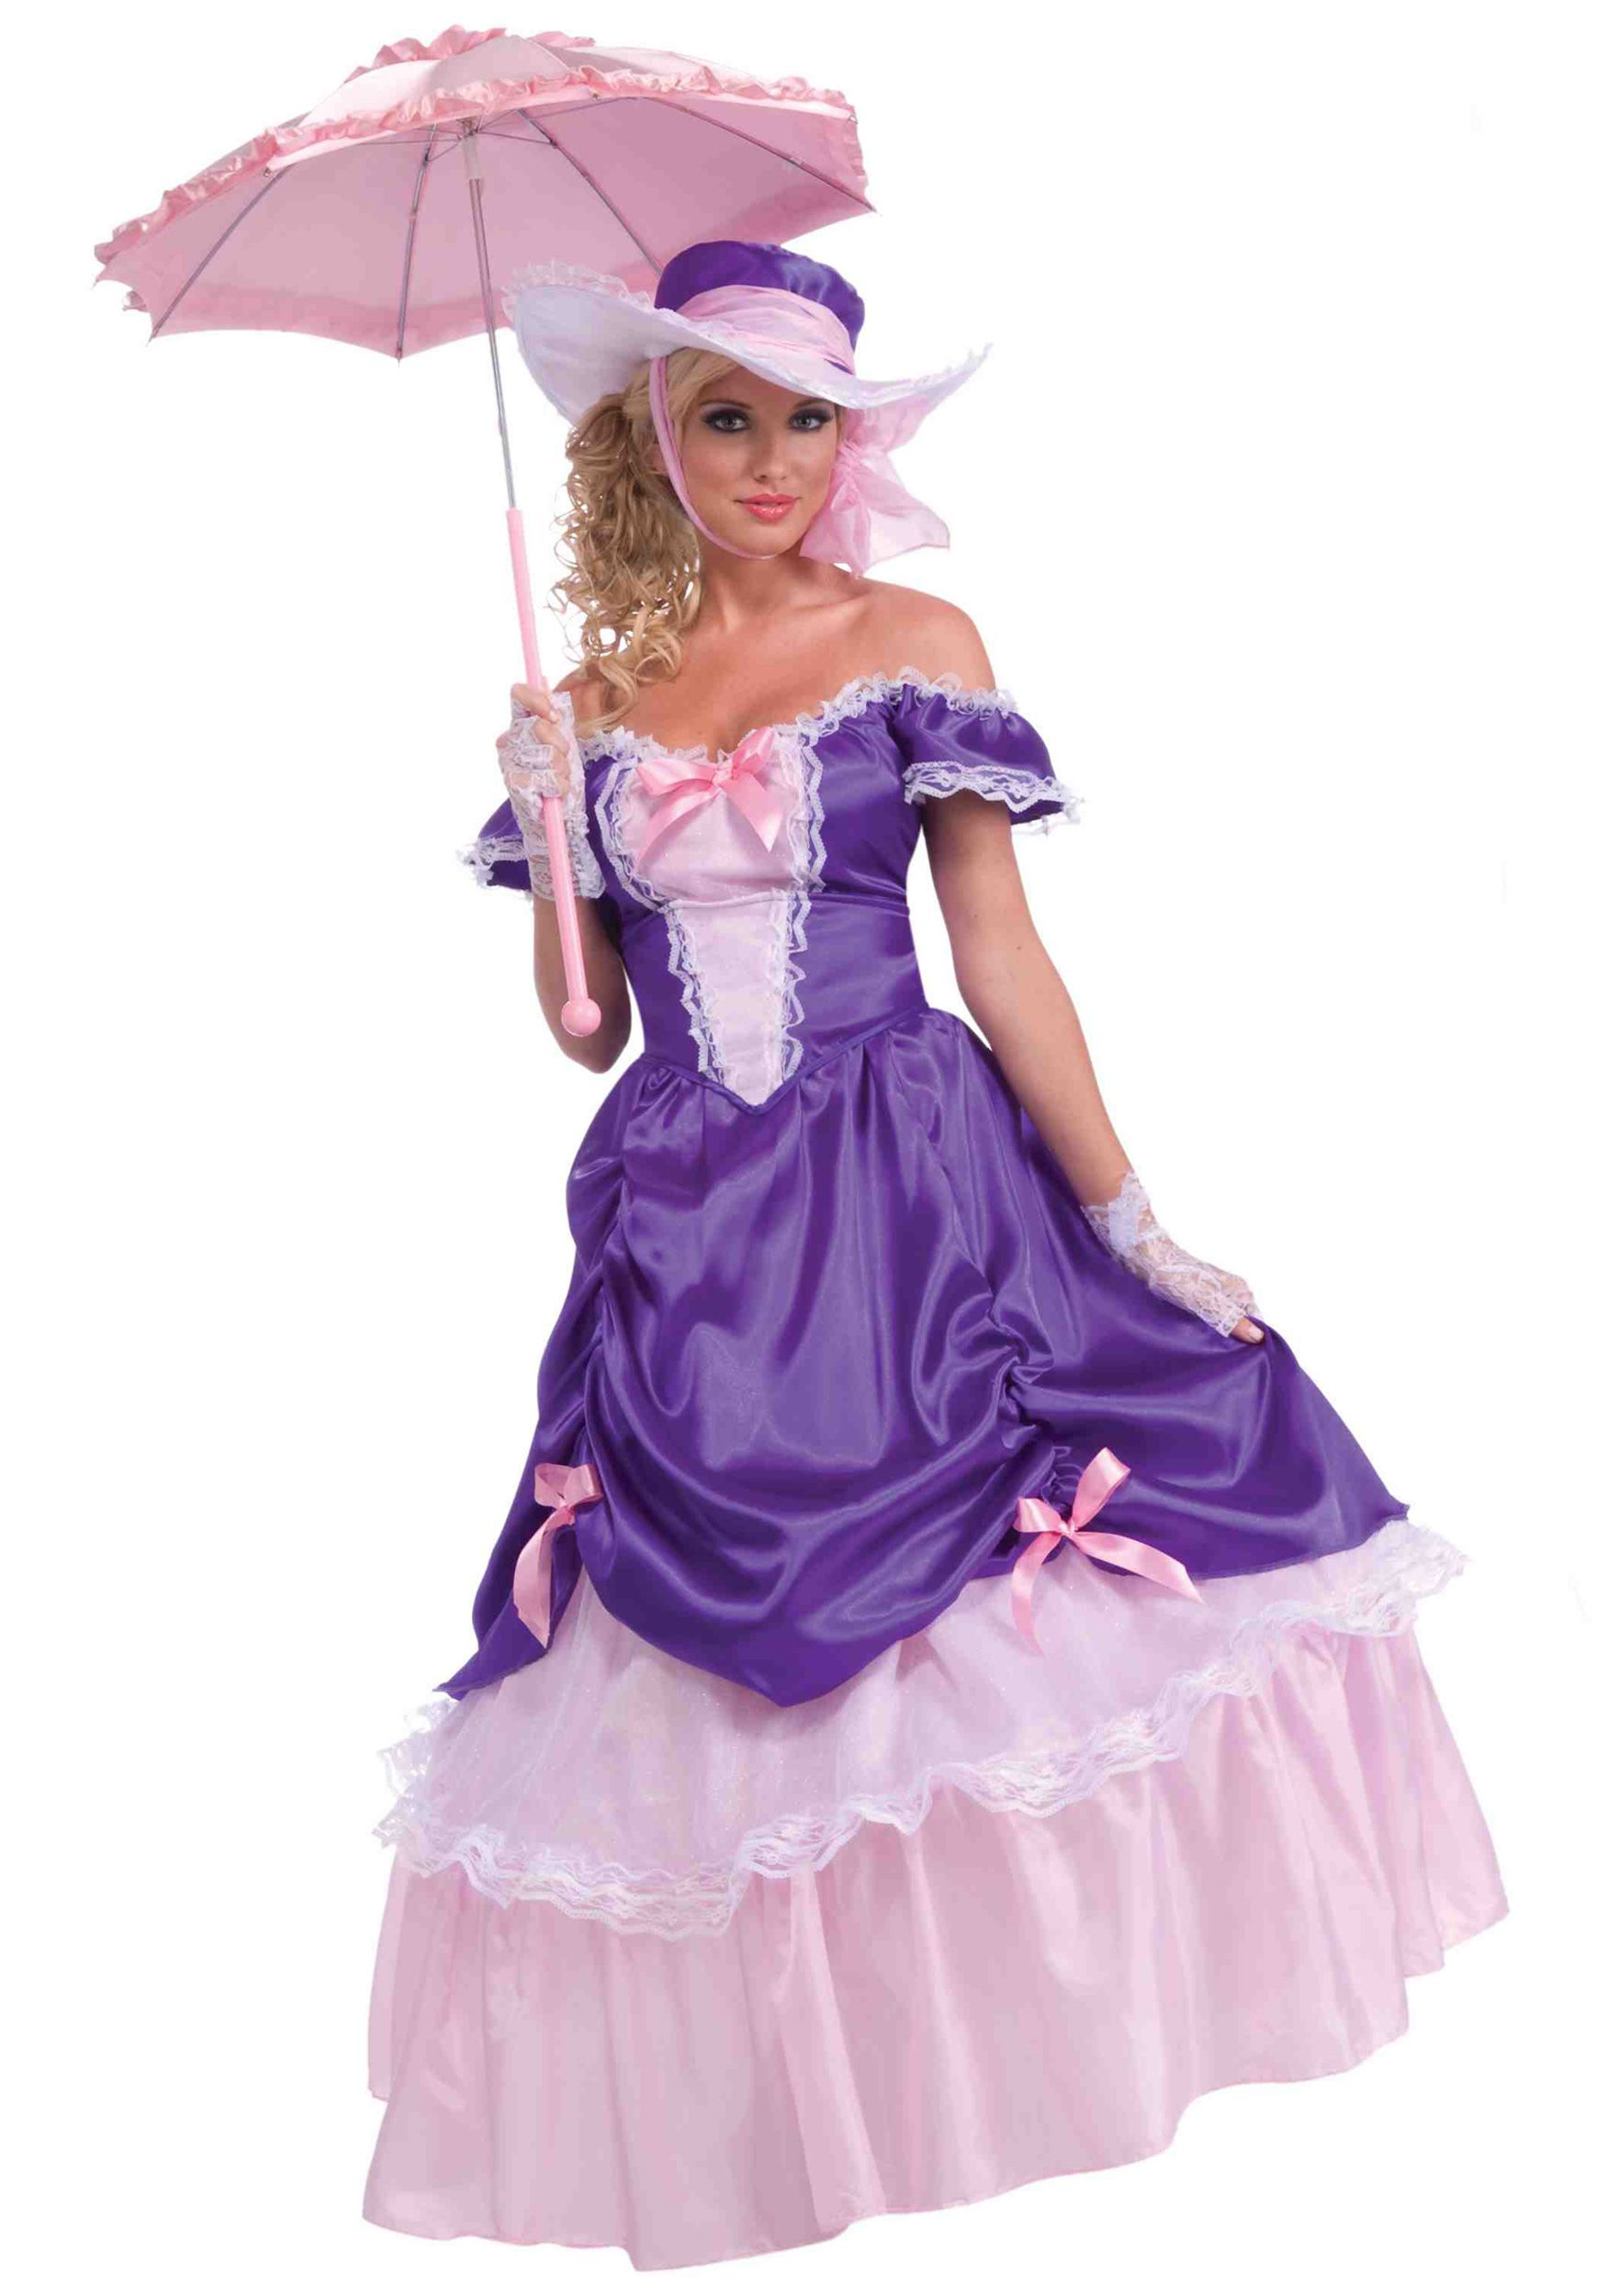 Blossom Southern Belle Costume | Southern bell | Pinterest